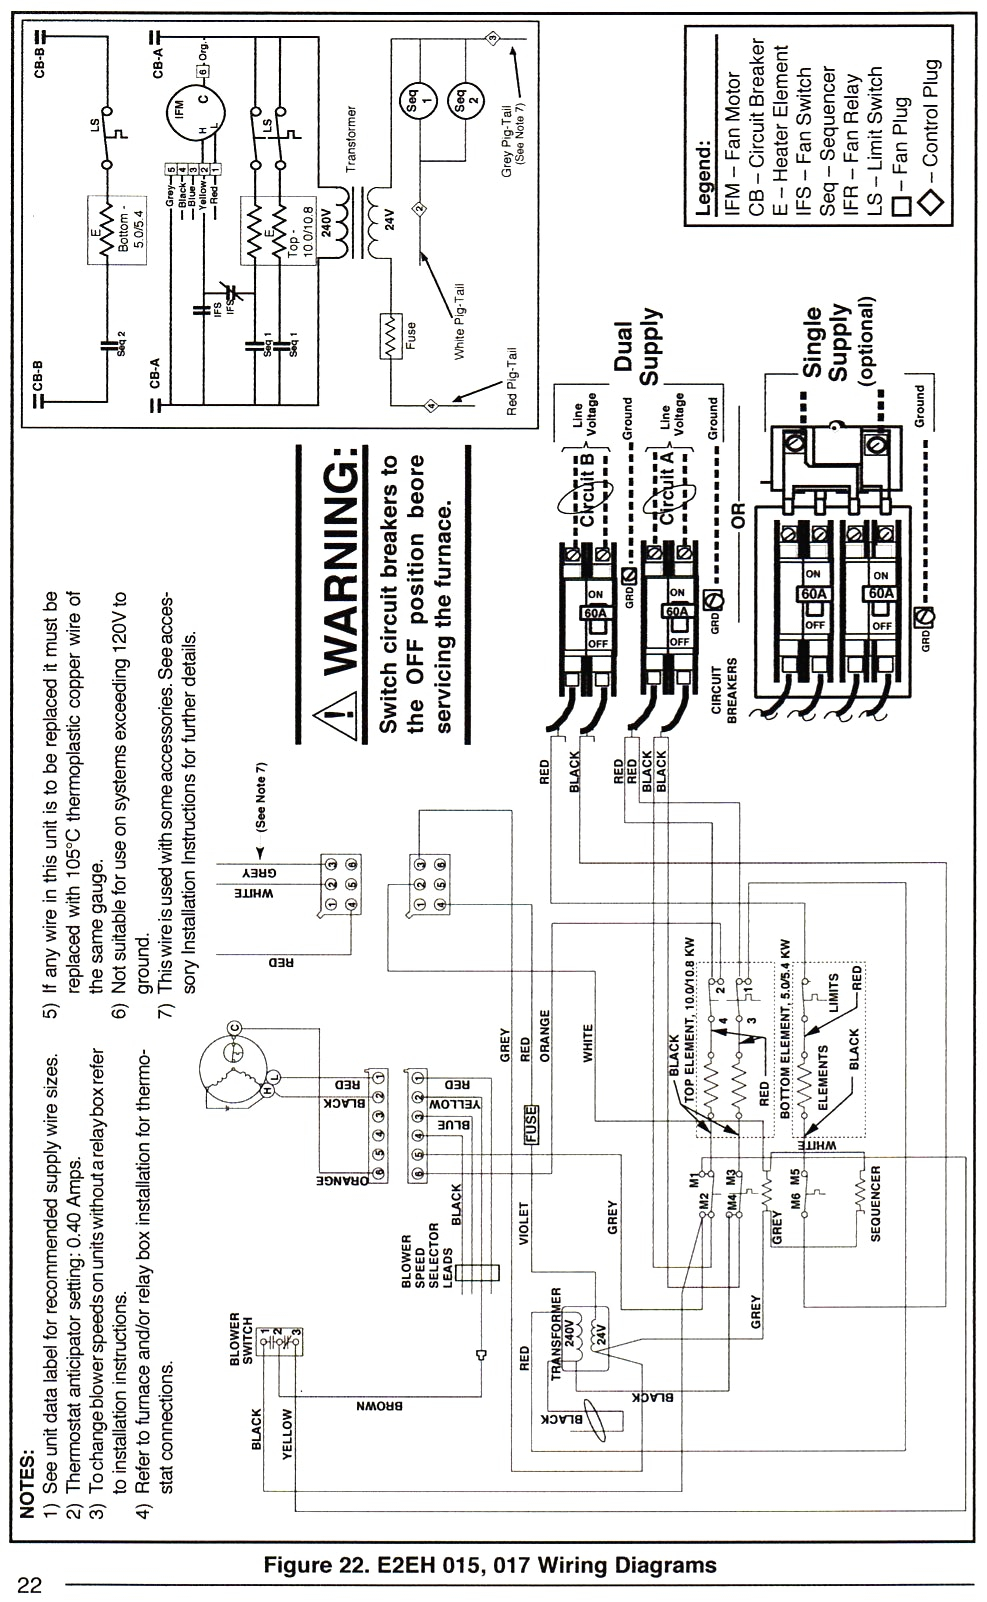 hight resolution of old nordyne furnaces wiring diagram image wiring diagram centre nordyne thermostat wiring diagram nordyne gas furnace